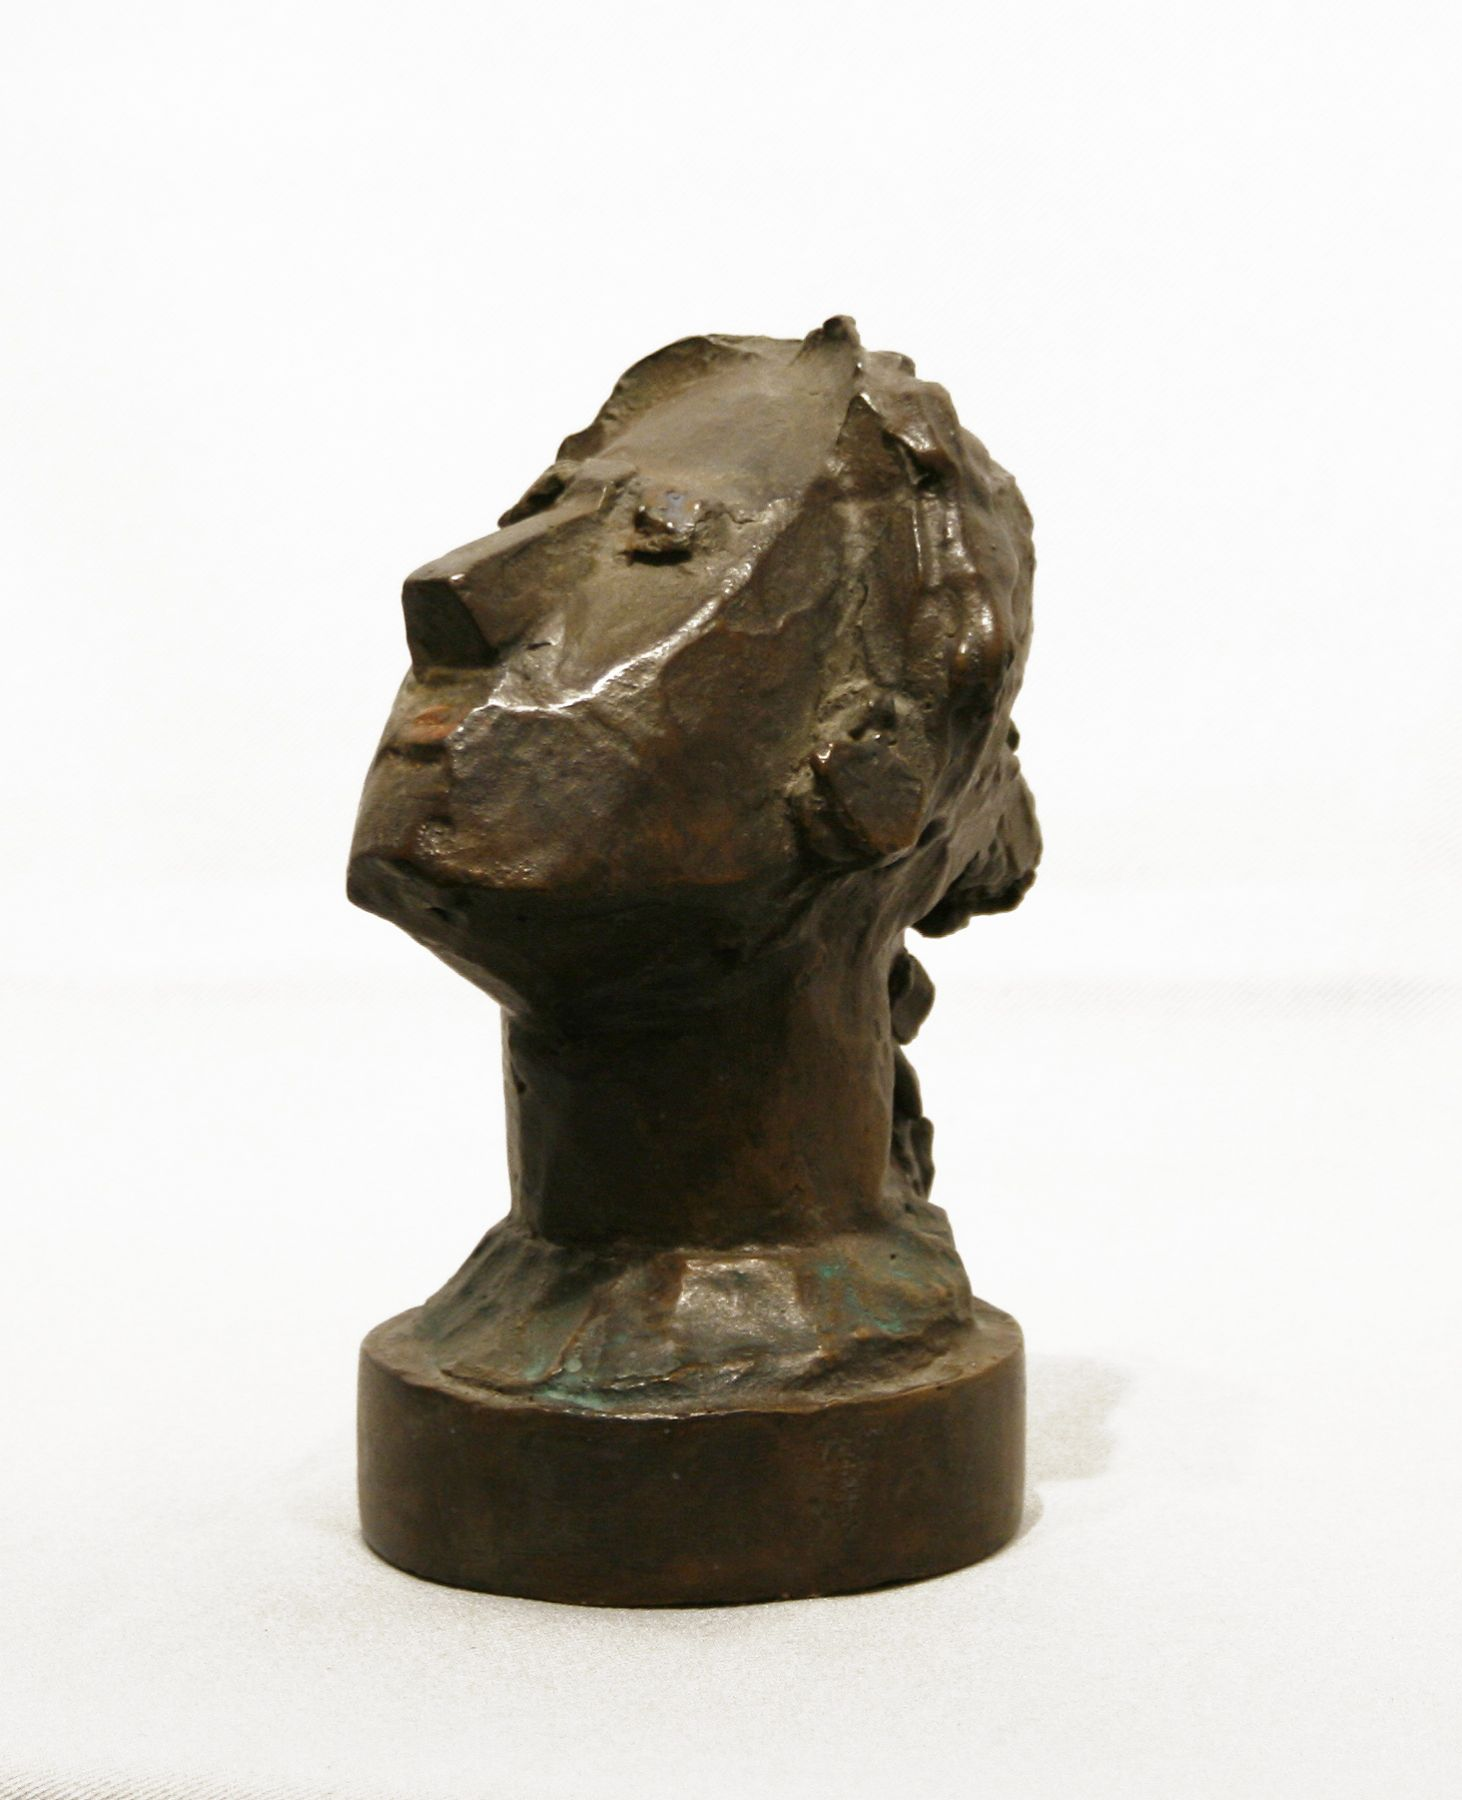 Max Weber, Gazing Head, 1943, bronze with brown patina heightened with red paint, 5 3/4 x 4 x 3 inches, Edition 3/6